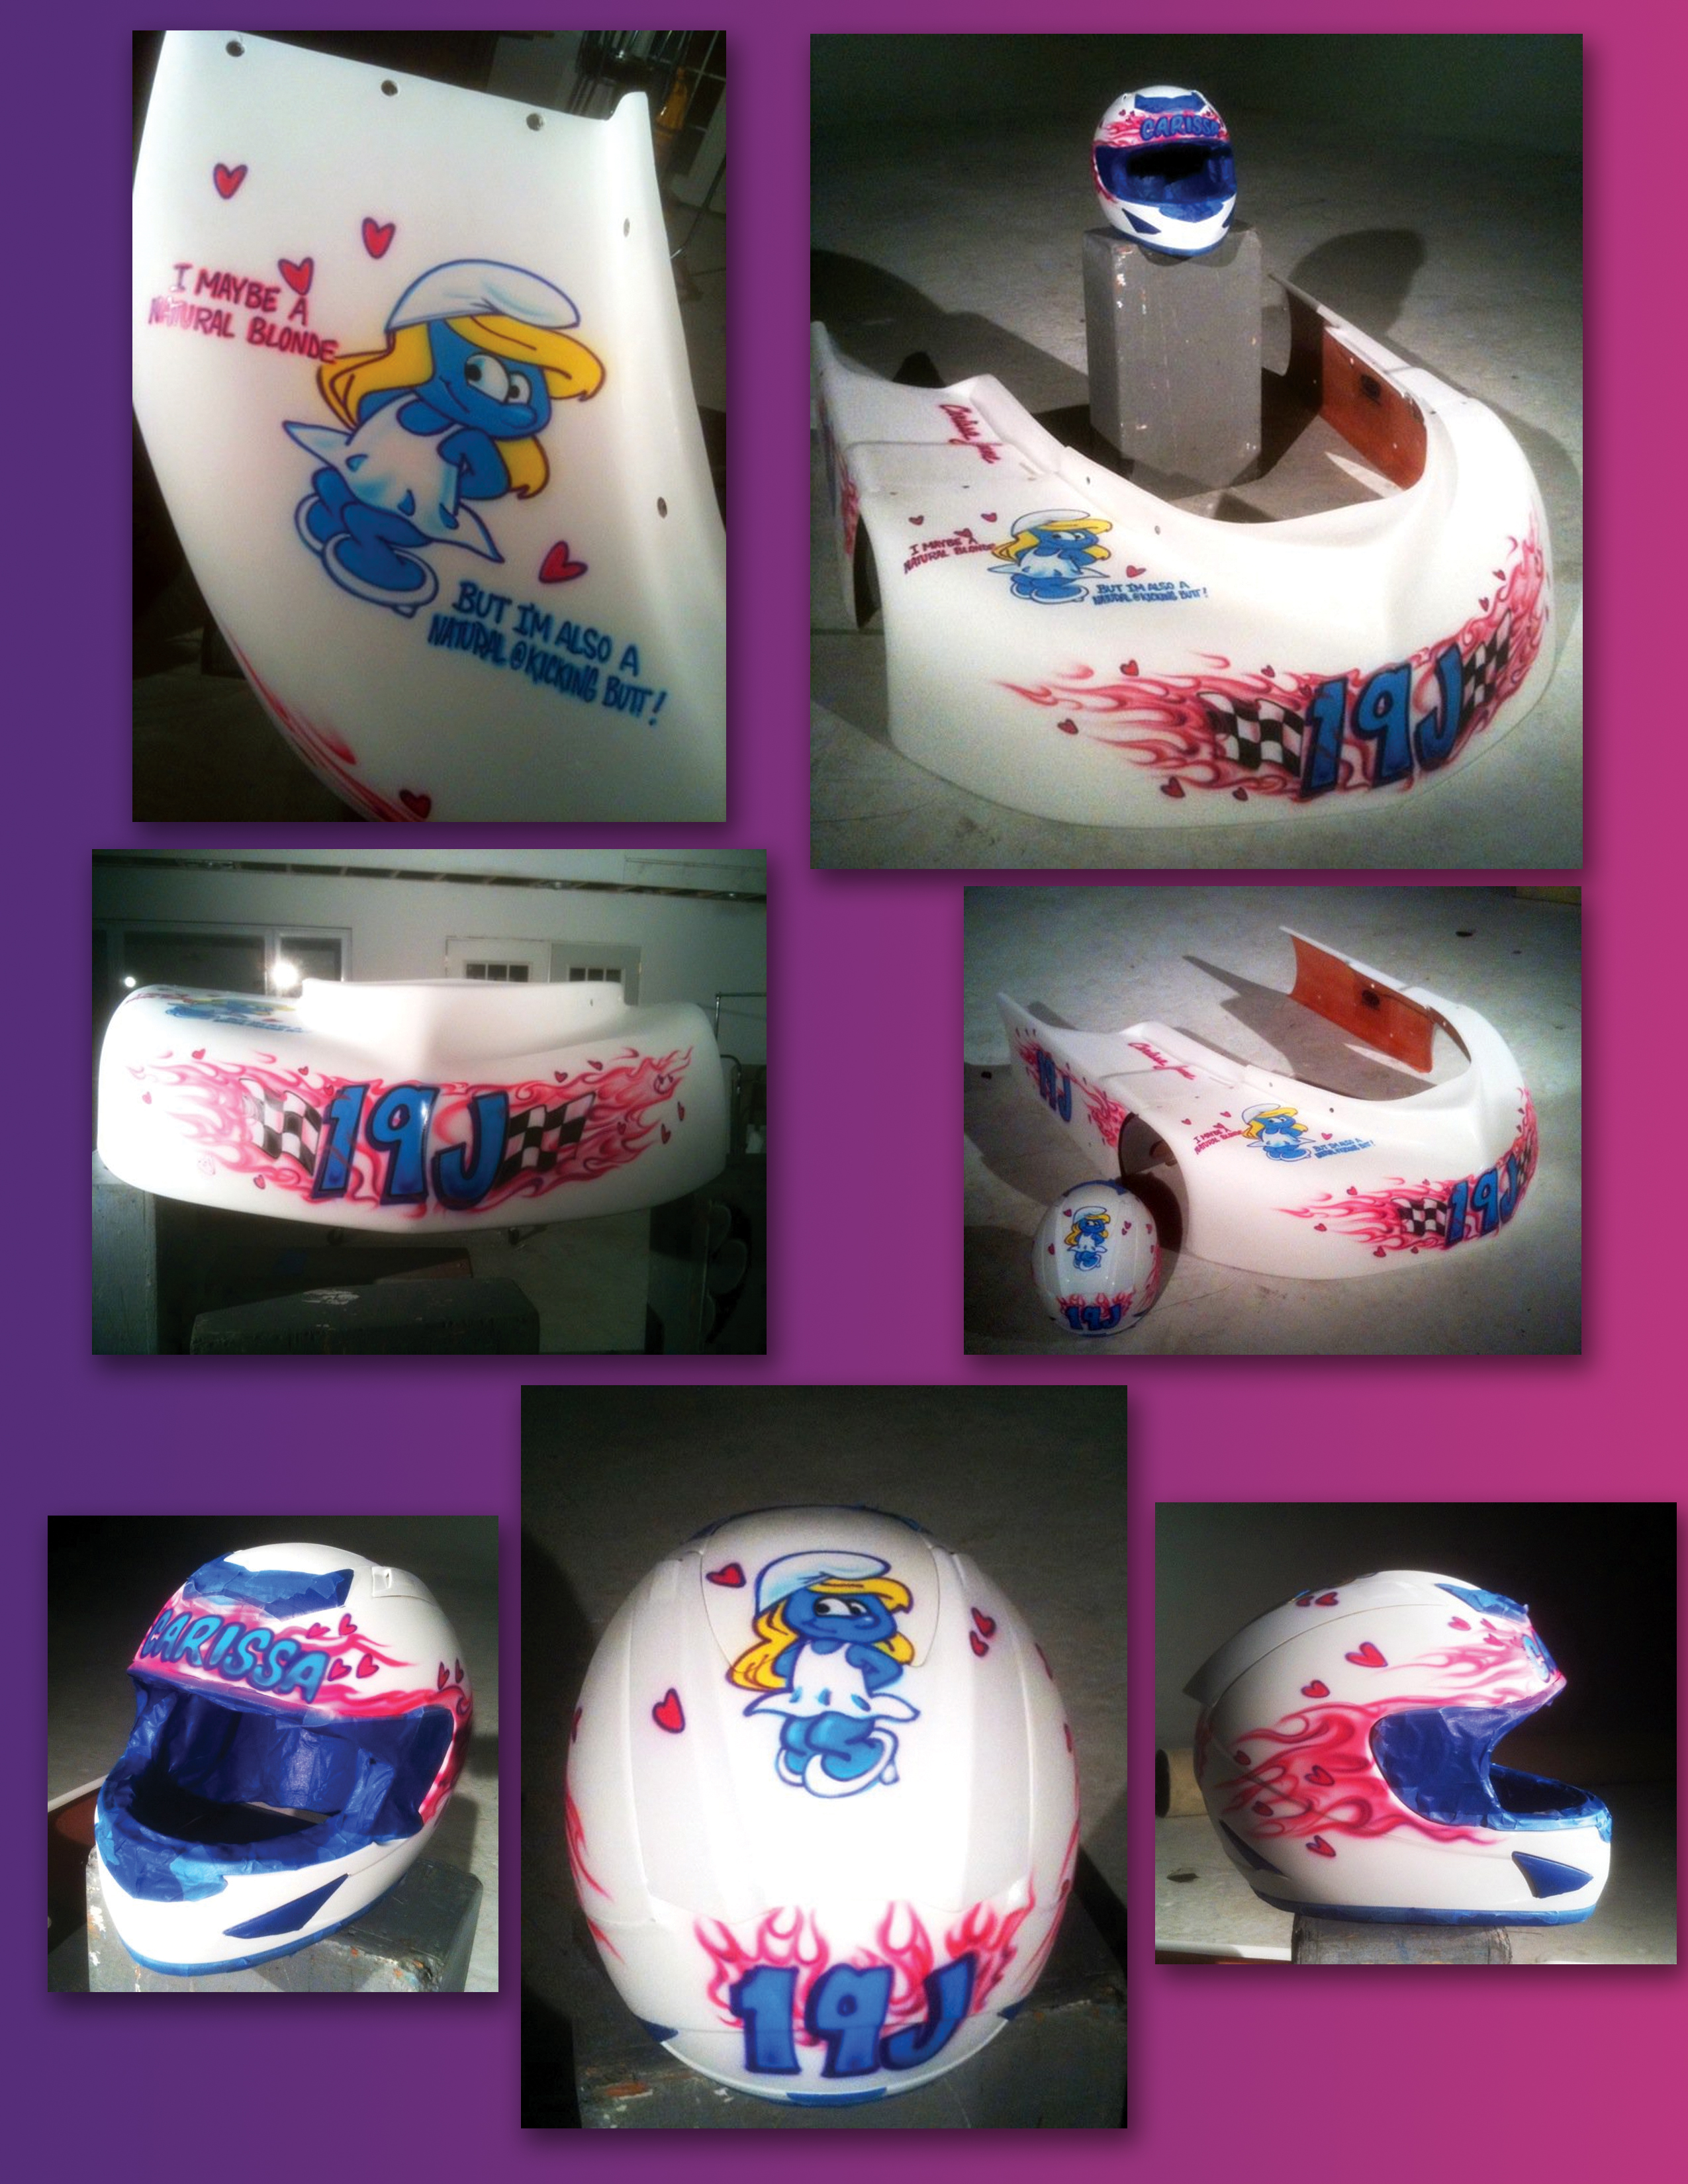 helmet airbrush artists